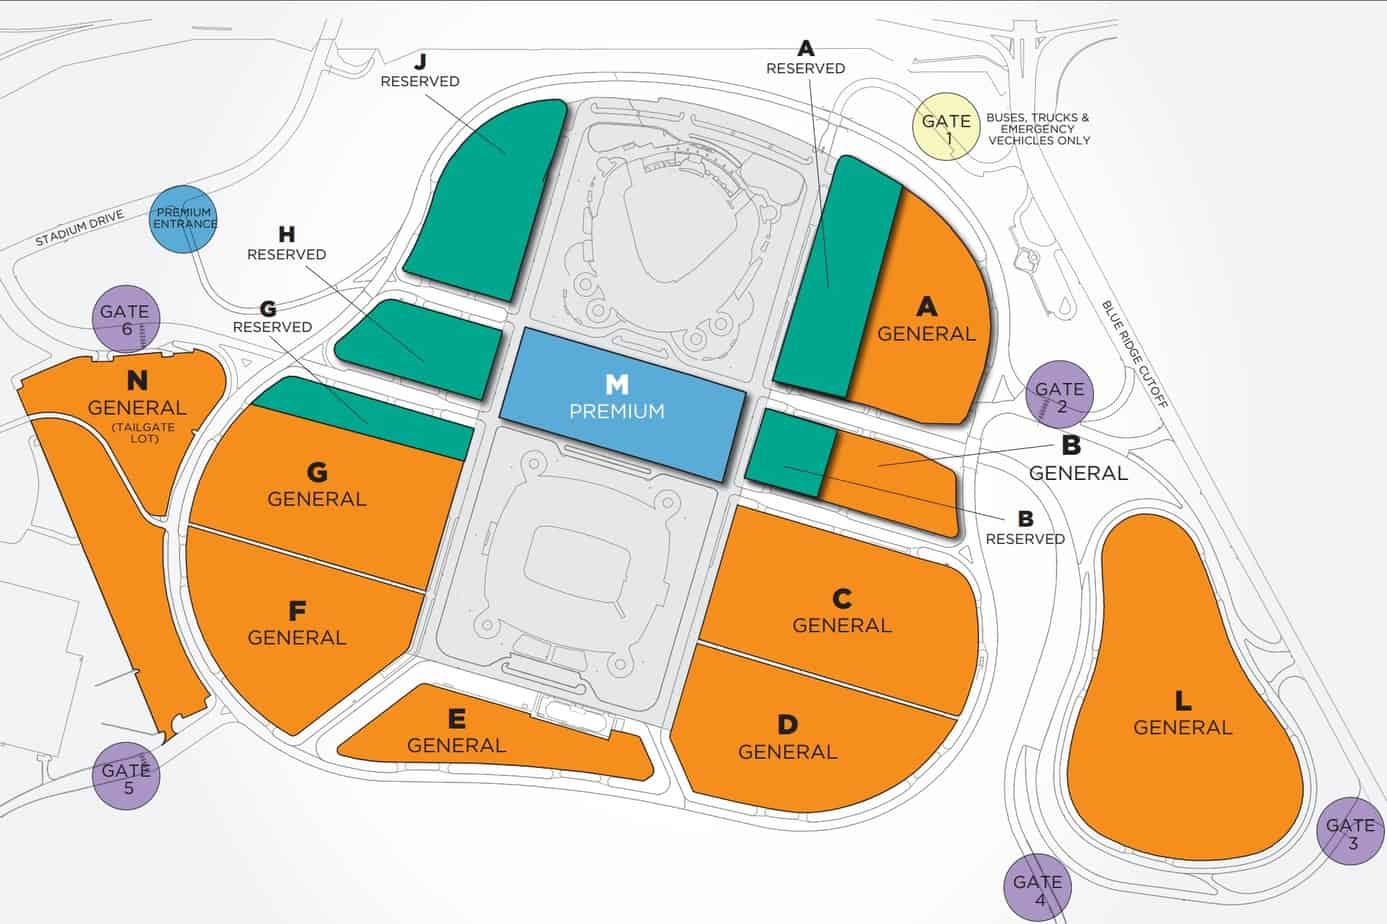 Kauffman Stadium Parking Map Kauffman Stadium Guide – Where to Park, Eat, and Get Cheap Tickets